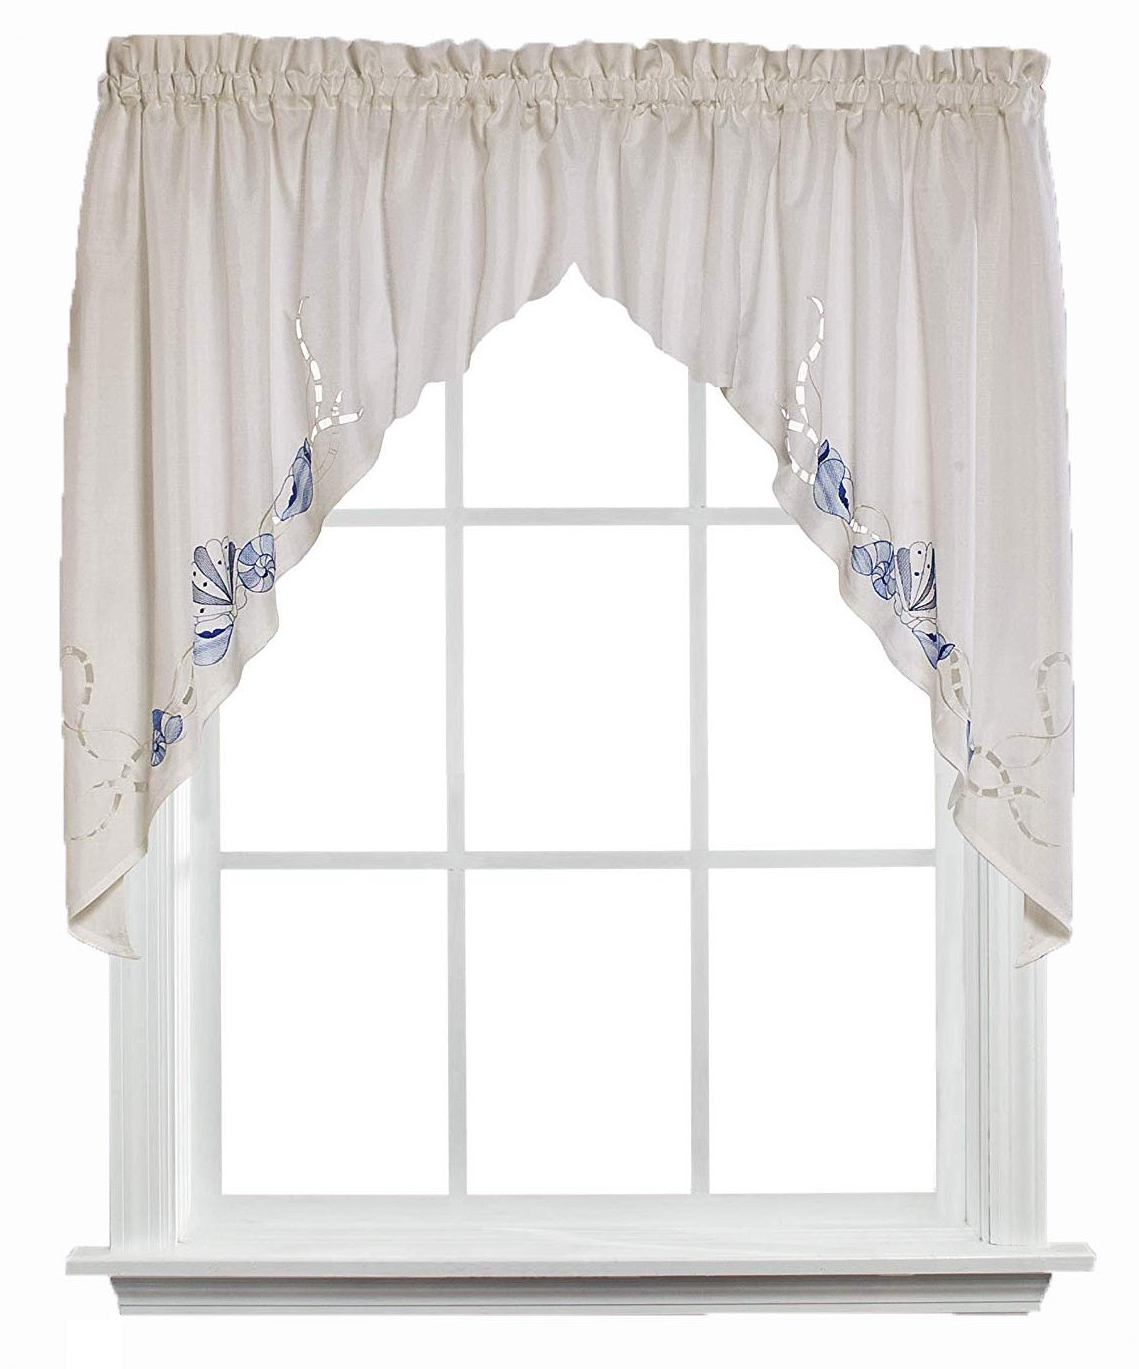 "Details About Saturday Knight Seabreeze Swag Curtain Valance 57"" X 36"" With Most Popular Seabreeze 36 Inch Tier Pairs In Ocean (View 12 of 20)"